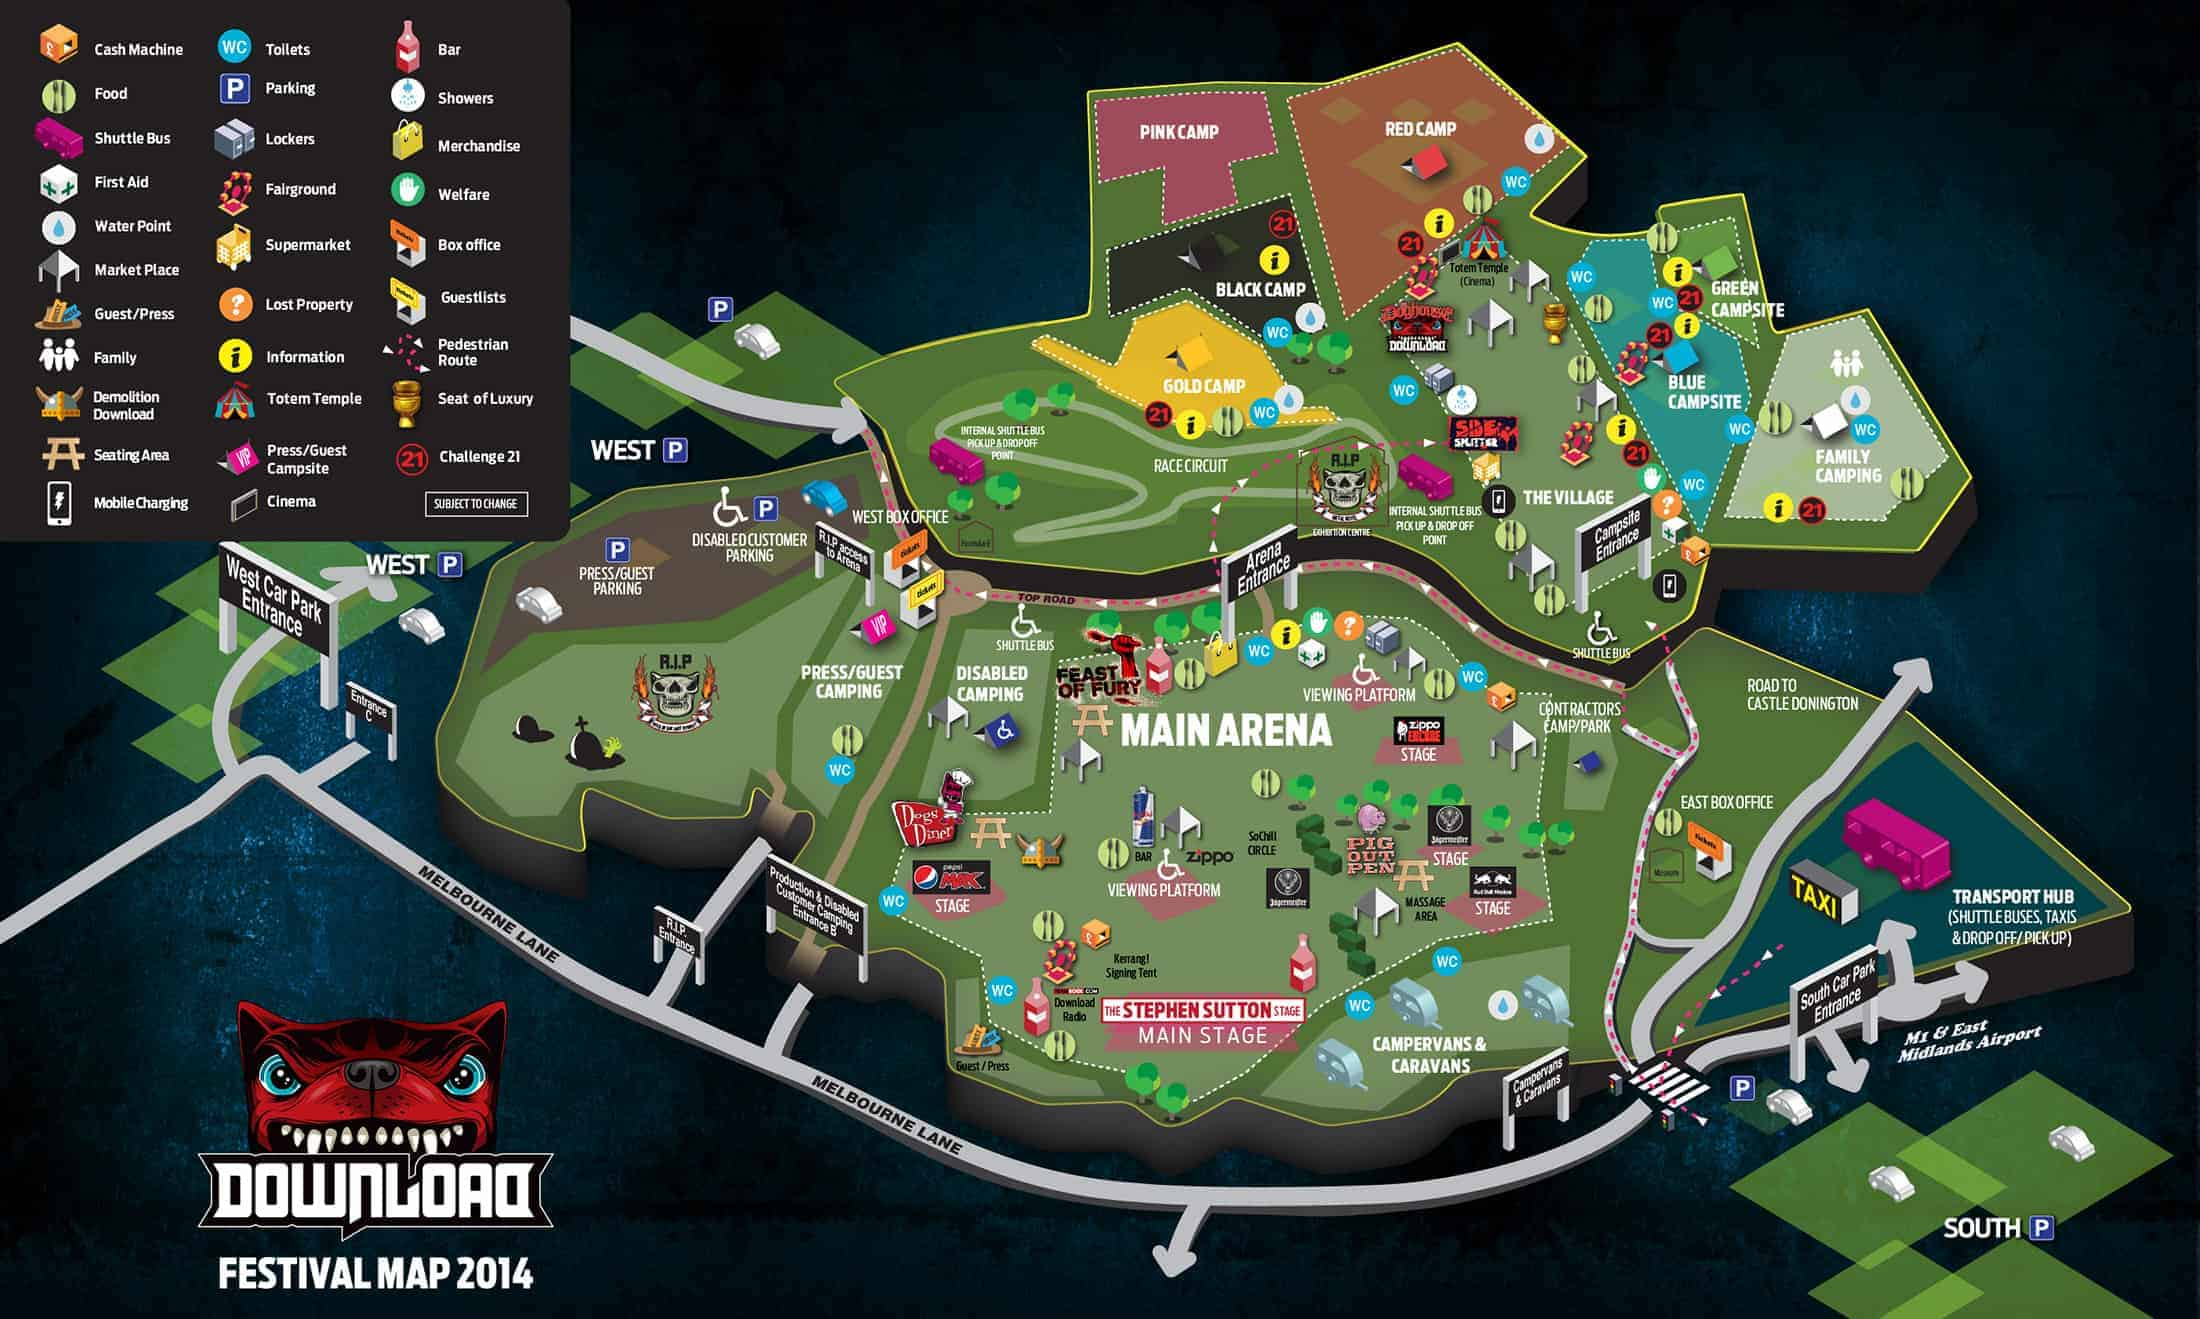 Surviving a festival is a lot about where things are and how far apart they are. Download 2012 festival site map